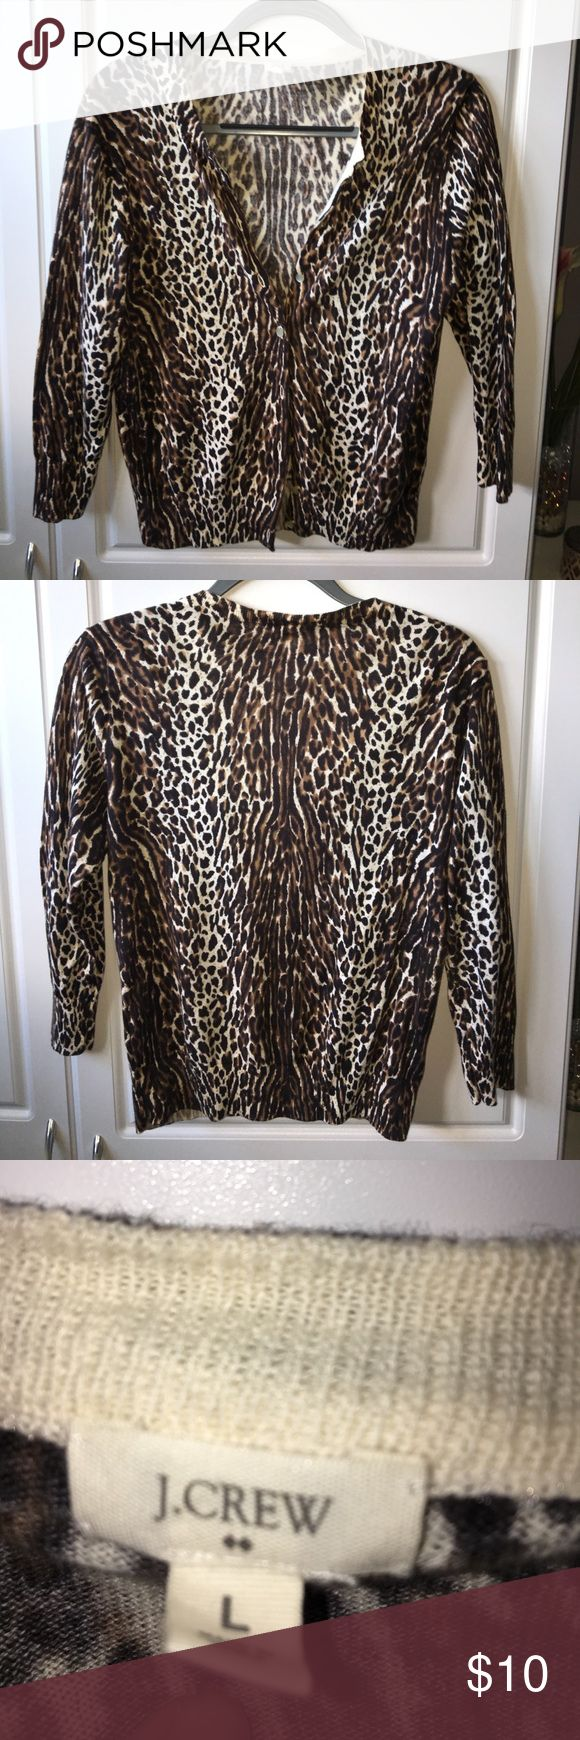 J Crew cheetah cardigan J. Crew Cheetah print cardigan. 3/4 sleeves. Extra button included. Great shape. J. Crew Sweaters Cardigans